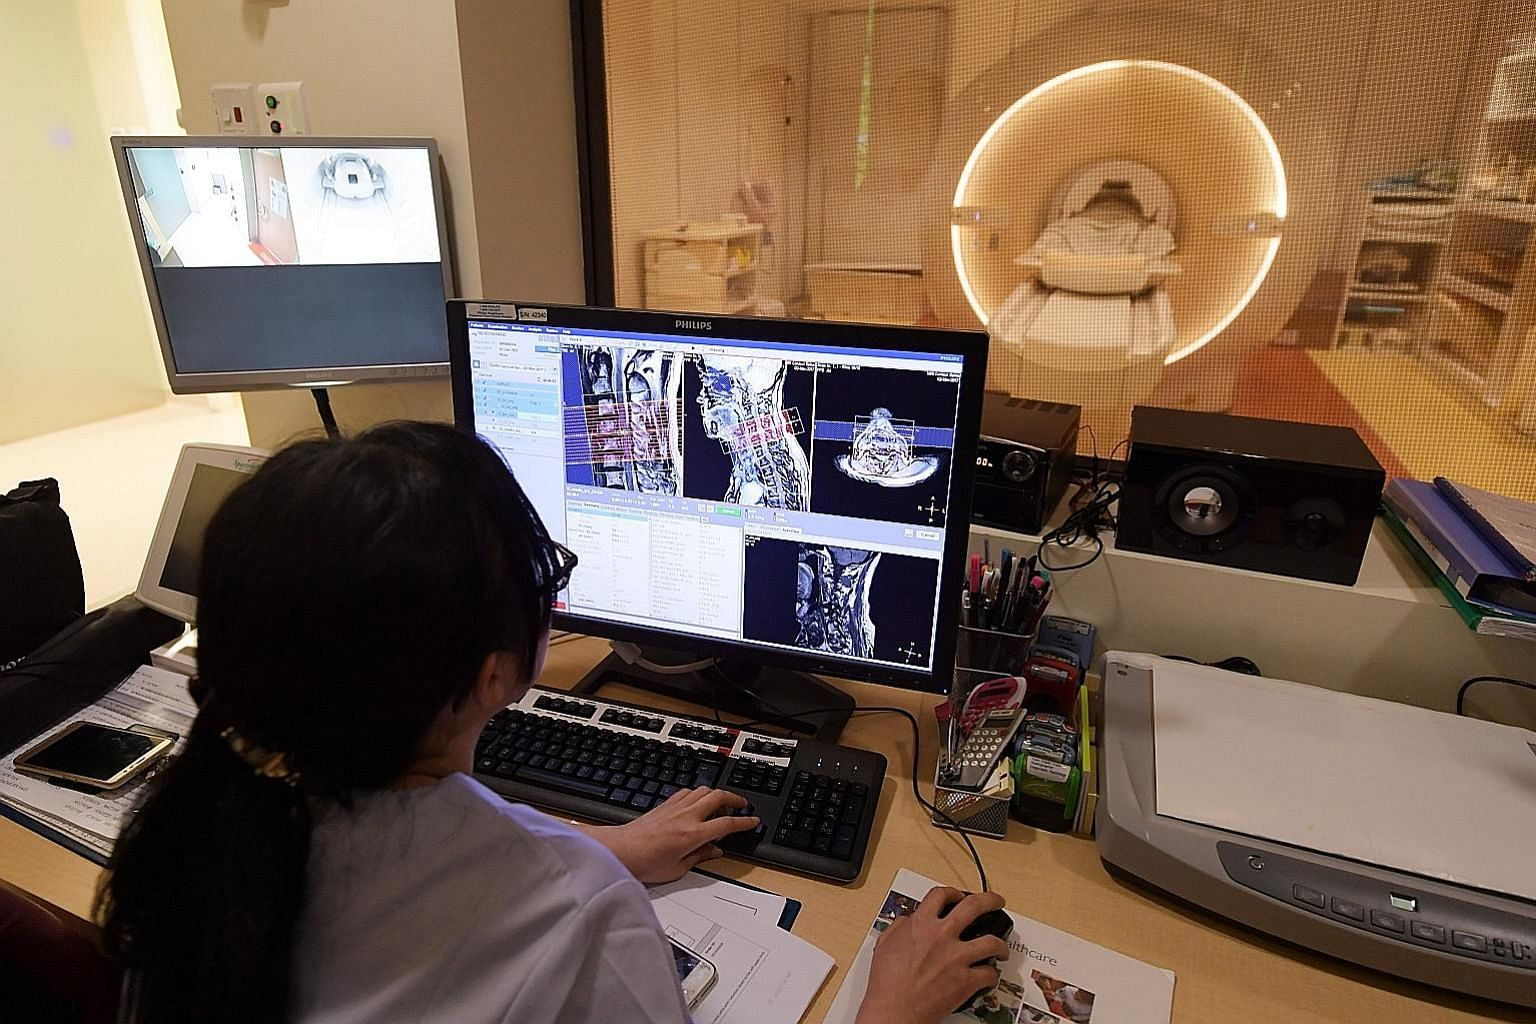 A radiographer at work at the Singapore General Hospital. The insurers said medical fees were the largest contributor to inpatient costs. Other factors included diagnostic procedures, drugs, prosthetics, and room and board.